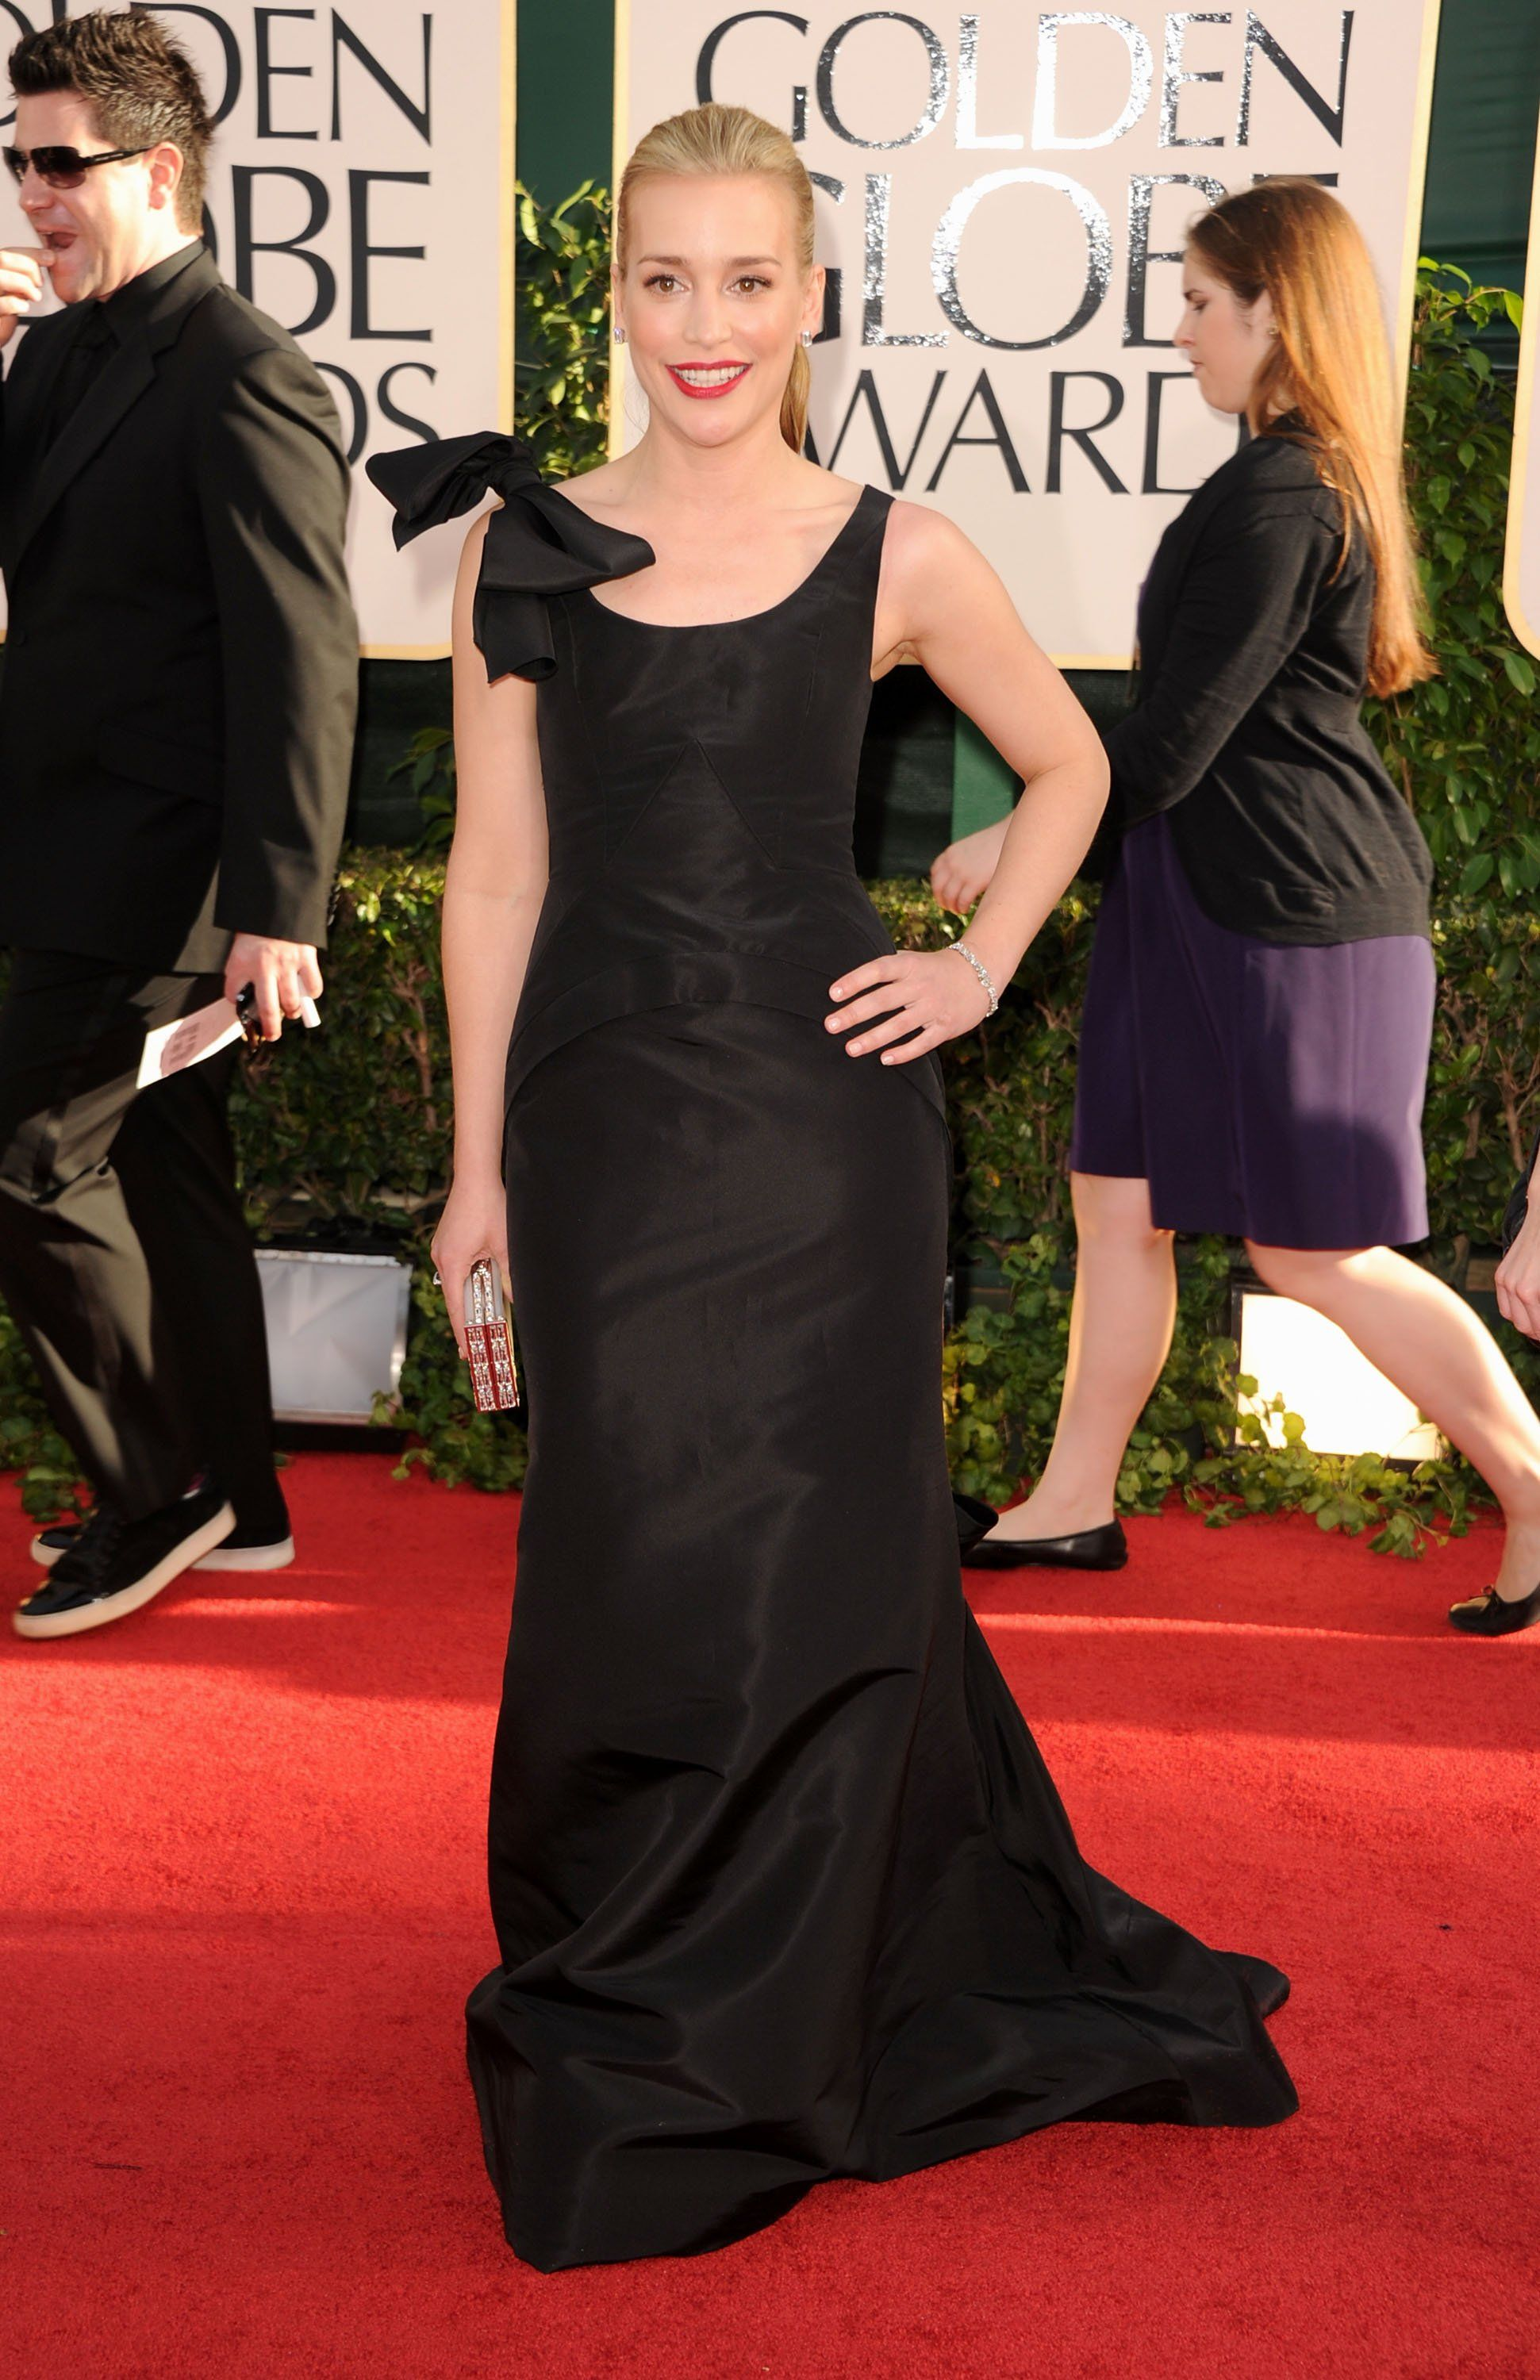 Pictures of golden globes ladies red carpet red carpet globe and